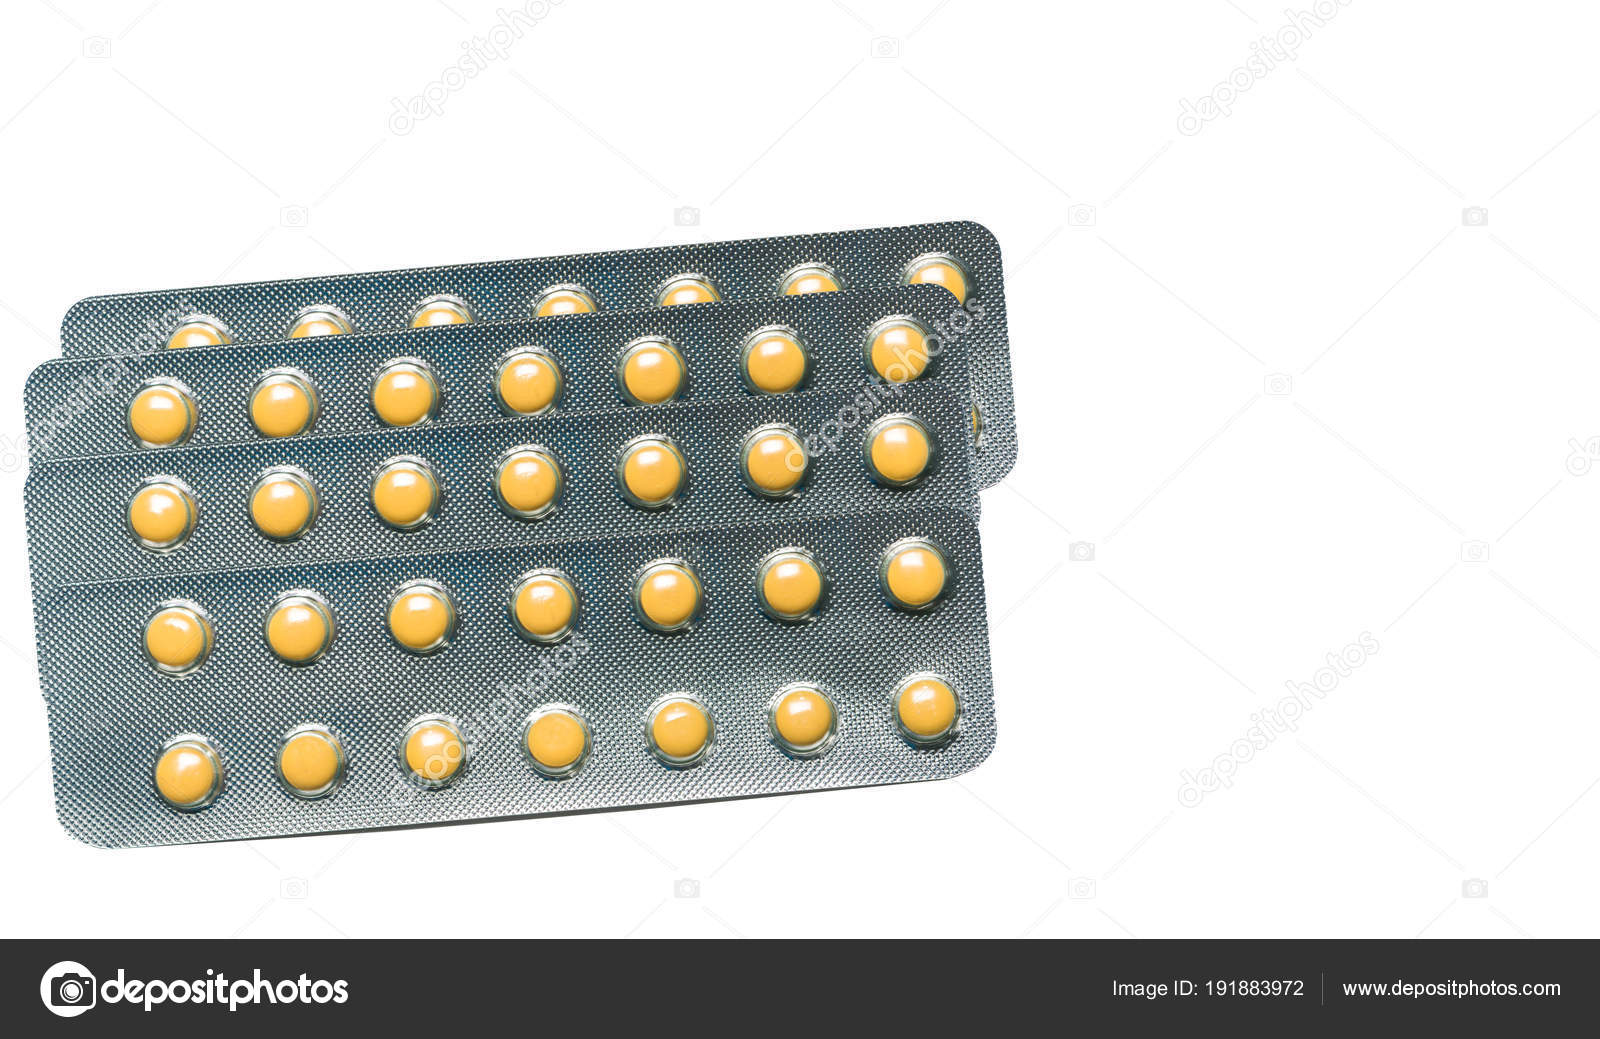 Rabeprazole : Small round light yellow enteric-coated tablet